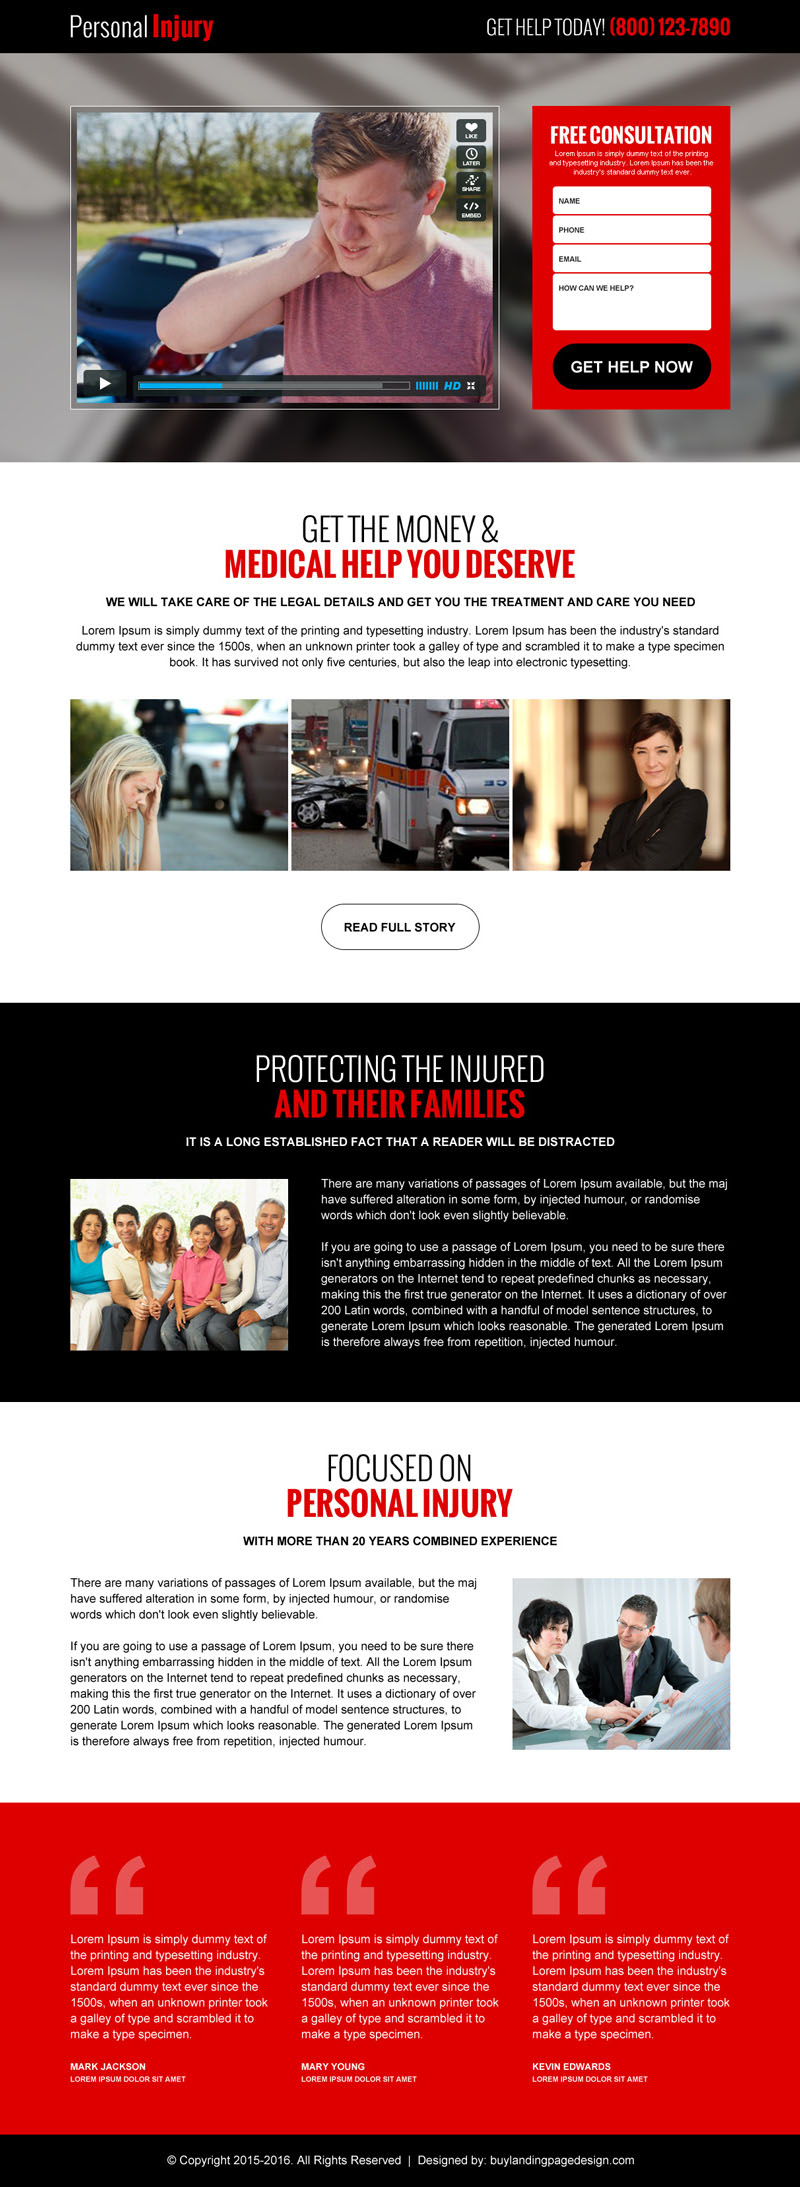 personal-injury-lead-generation-best-converting-video-landing-page-design-002